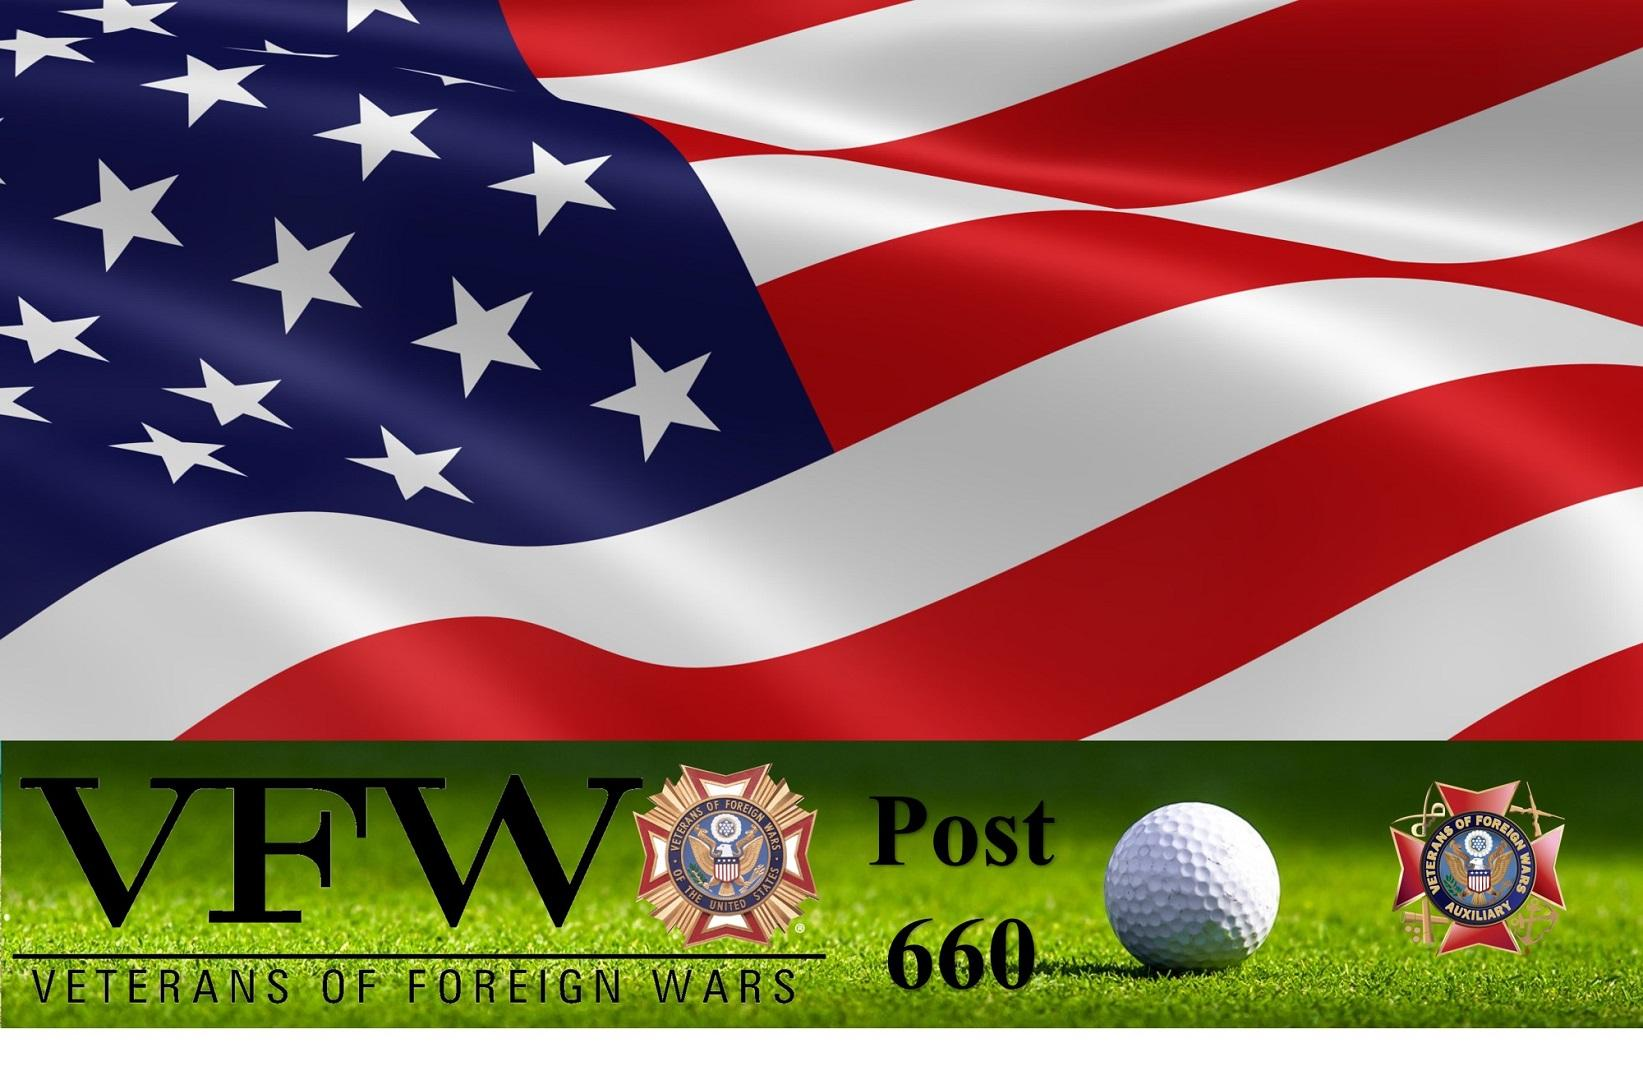 1st Annual VFW Post 660 Charity Golf Tourname